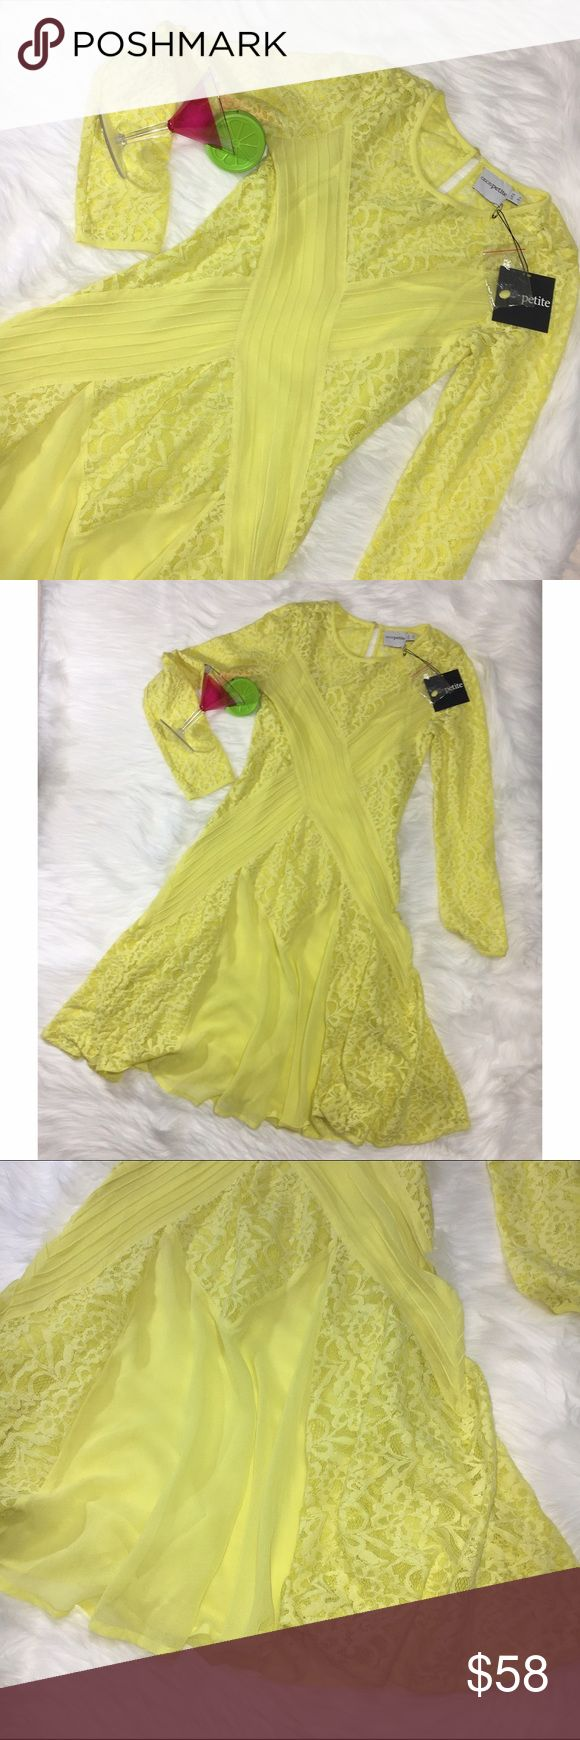 NWT ASOS Sheer Lace Beautiful Yellow Dress Boho • NWT ASOS Petite • Fit And Flare • Sz 1  • Comes with extra button • Beautiful lace detail on Arms and Throughout • Comes with an Attached Slip that can be removed by unbuttoning it • 100% Polyester Lining  • Trim 51% Nylon  • 49% Cotton ASOS Petite Dresses Long Sleeve